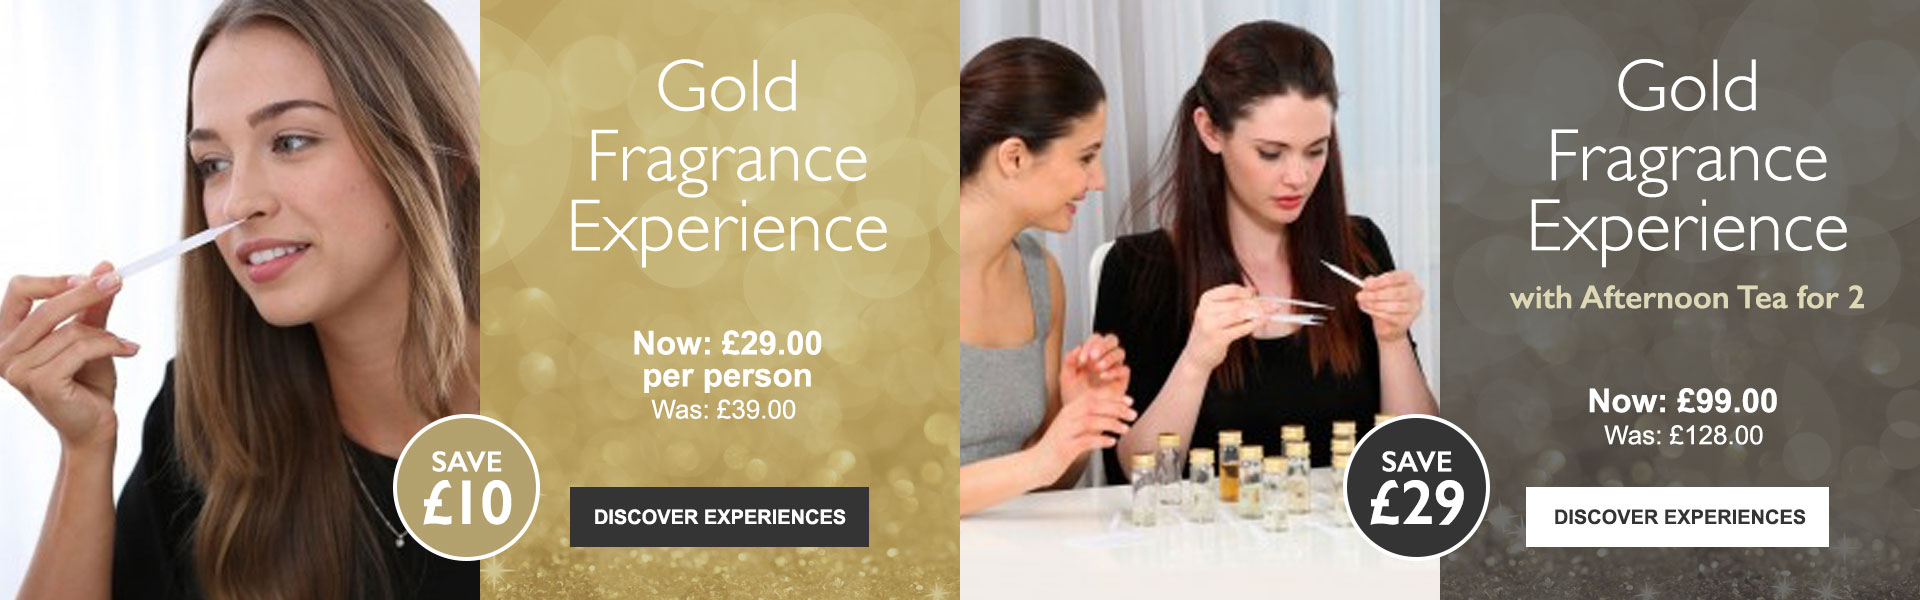 Gold Fragrance Experience - Now: £29.00 per person Was: £39.00. Gold Fragrance Experience with Afternoon Tea for 2 - Now: £99.00 Was: £128.00.